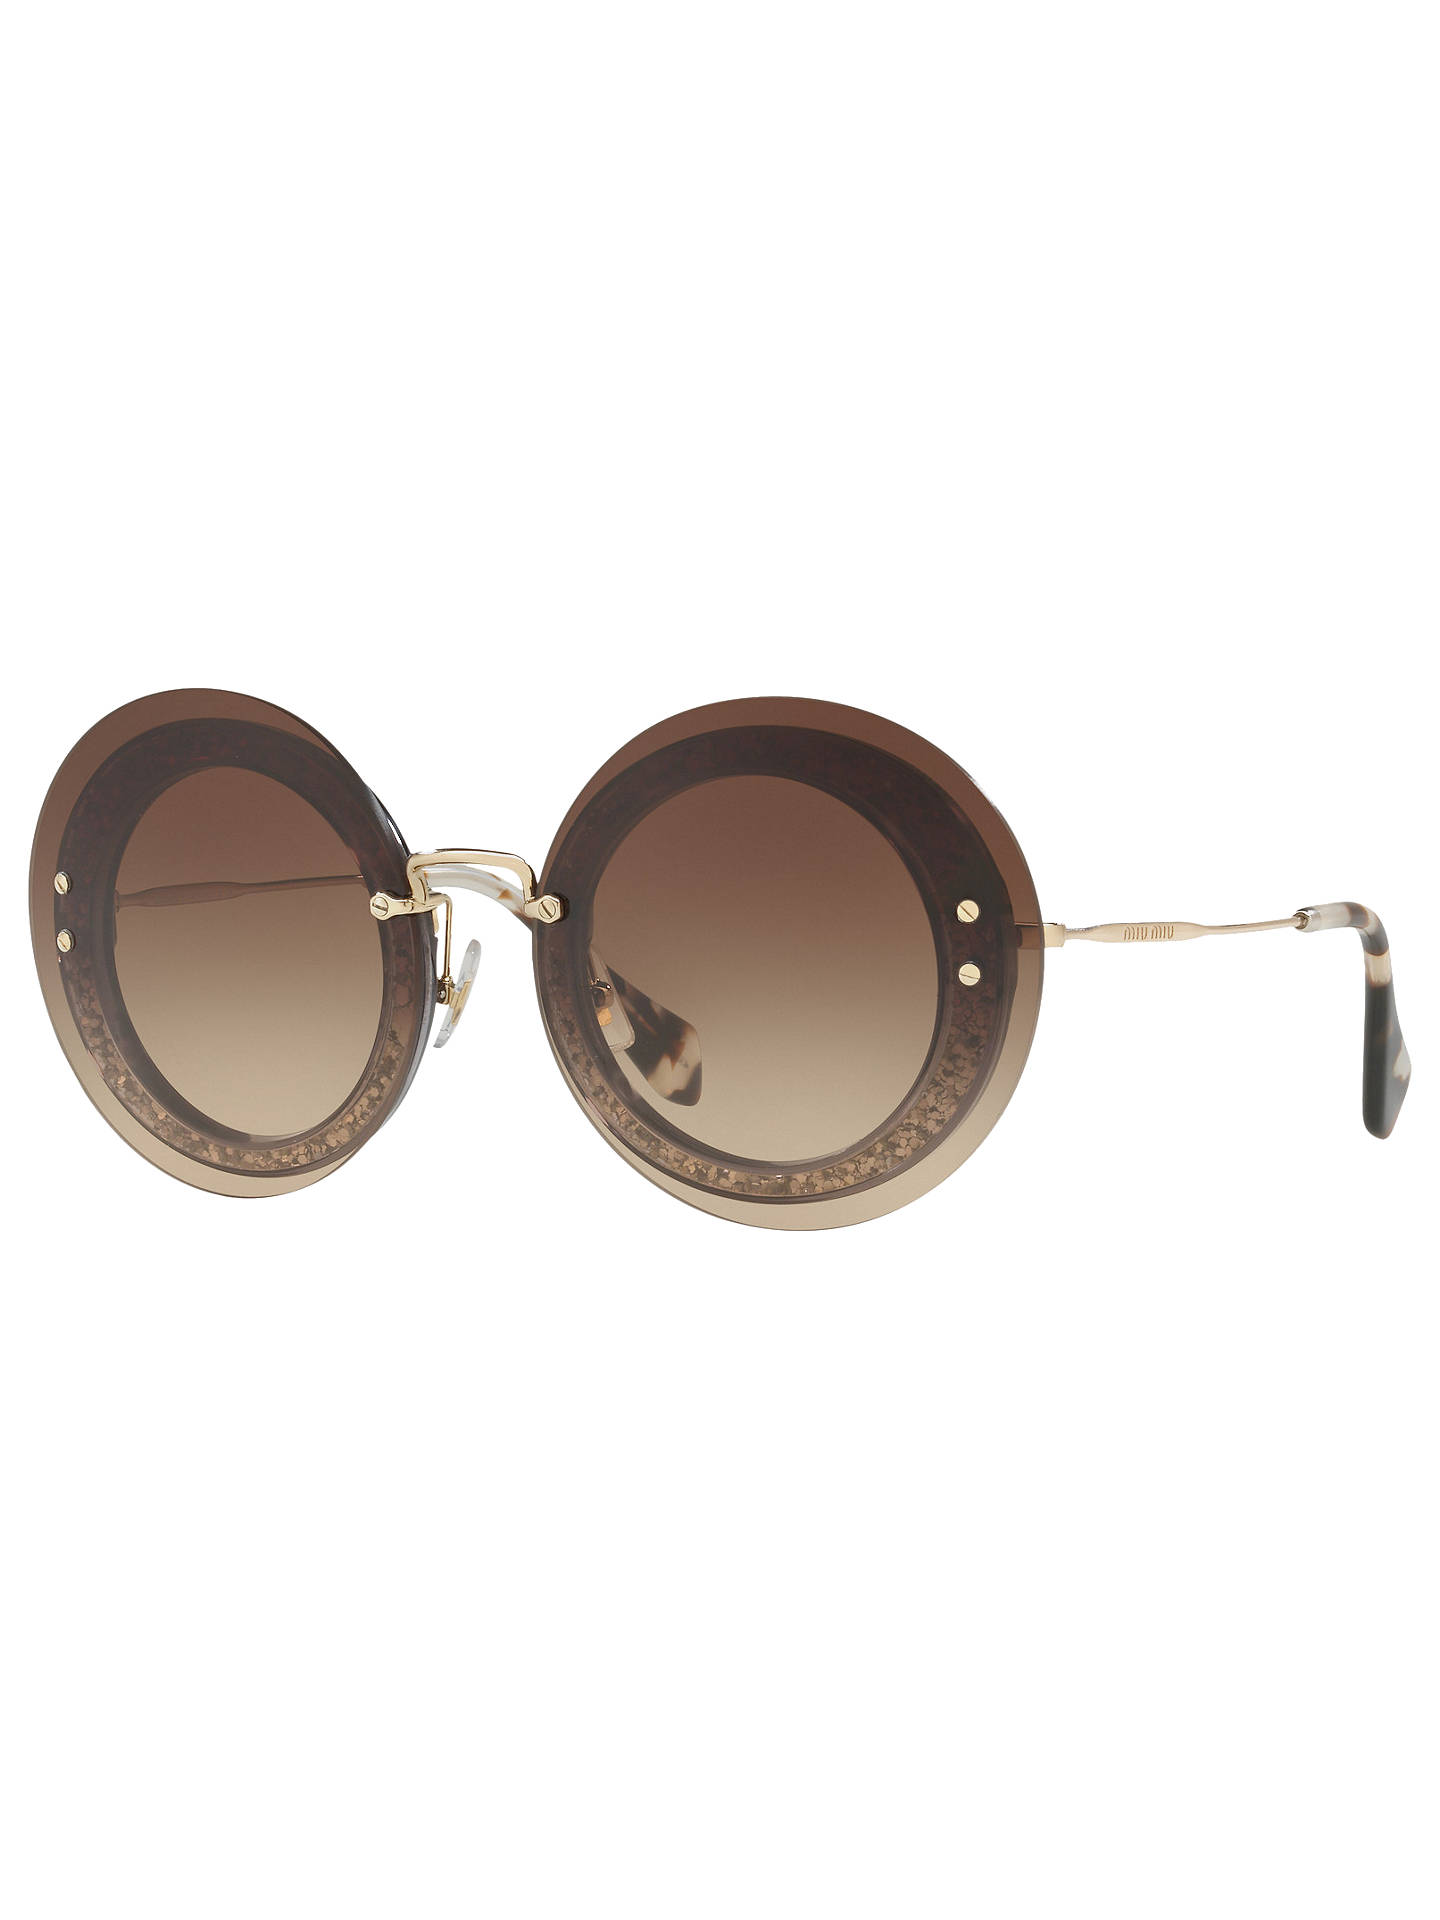 dded06c7913 Buy Miu Miu MU 10RS Round Sunglasses